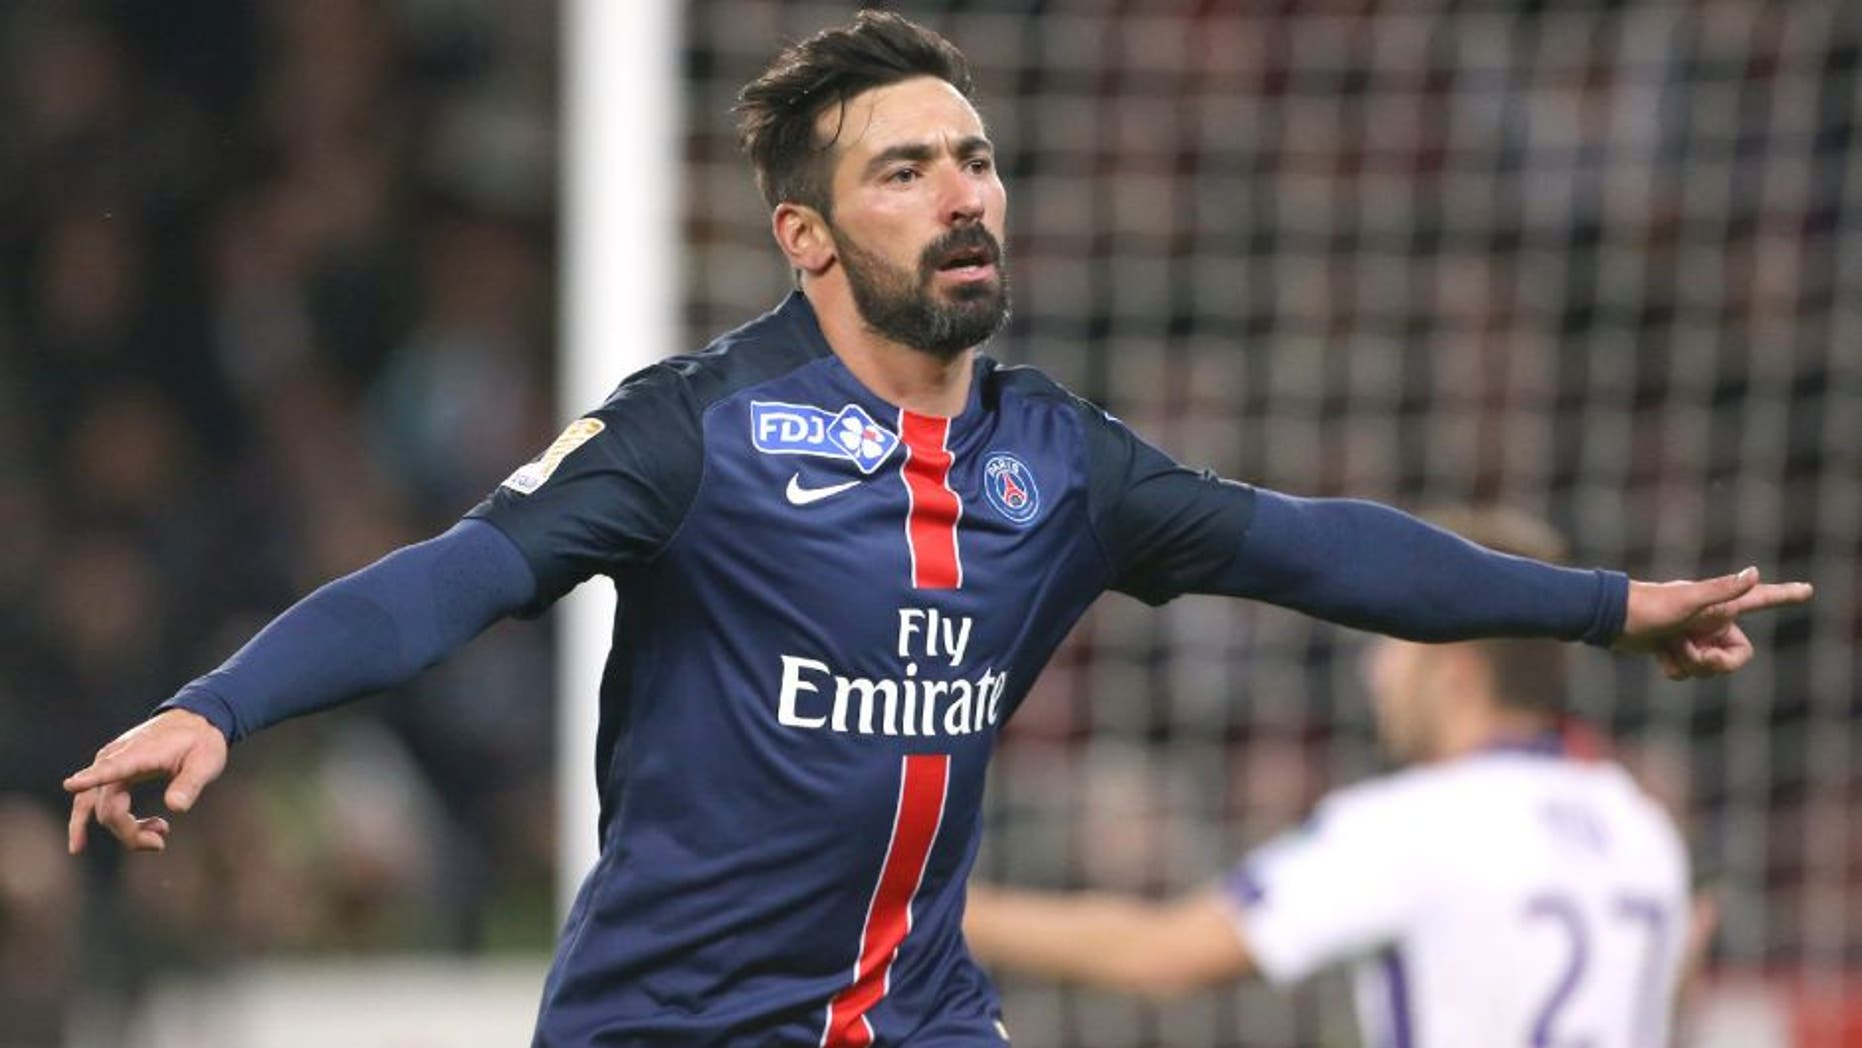 PARIS, FRANCE - JANUARY 27: Ezequiel Lavezzi of PSG celebrates his goal during the French League Cup (Coupe de la Ligue) match between Paris Saint-Germain (PSG) and Toulouse FC (TFC) on January 27, 2016 in Paris, France. (Photo by Jean Catuffe/Getty Images)